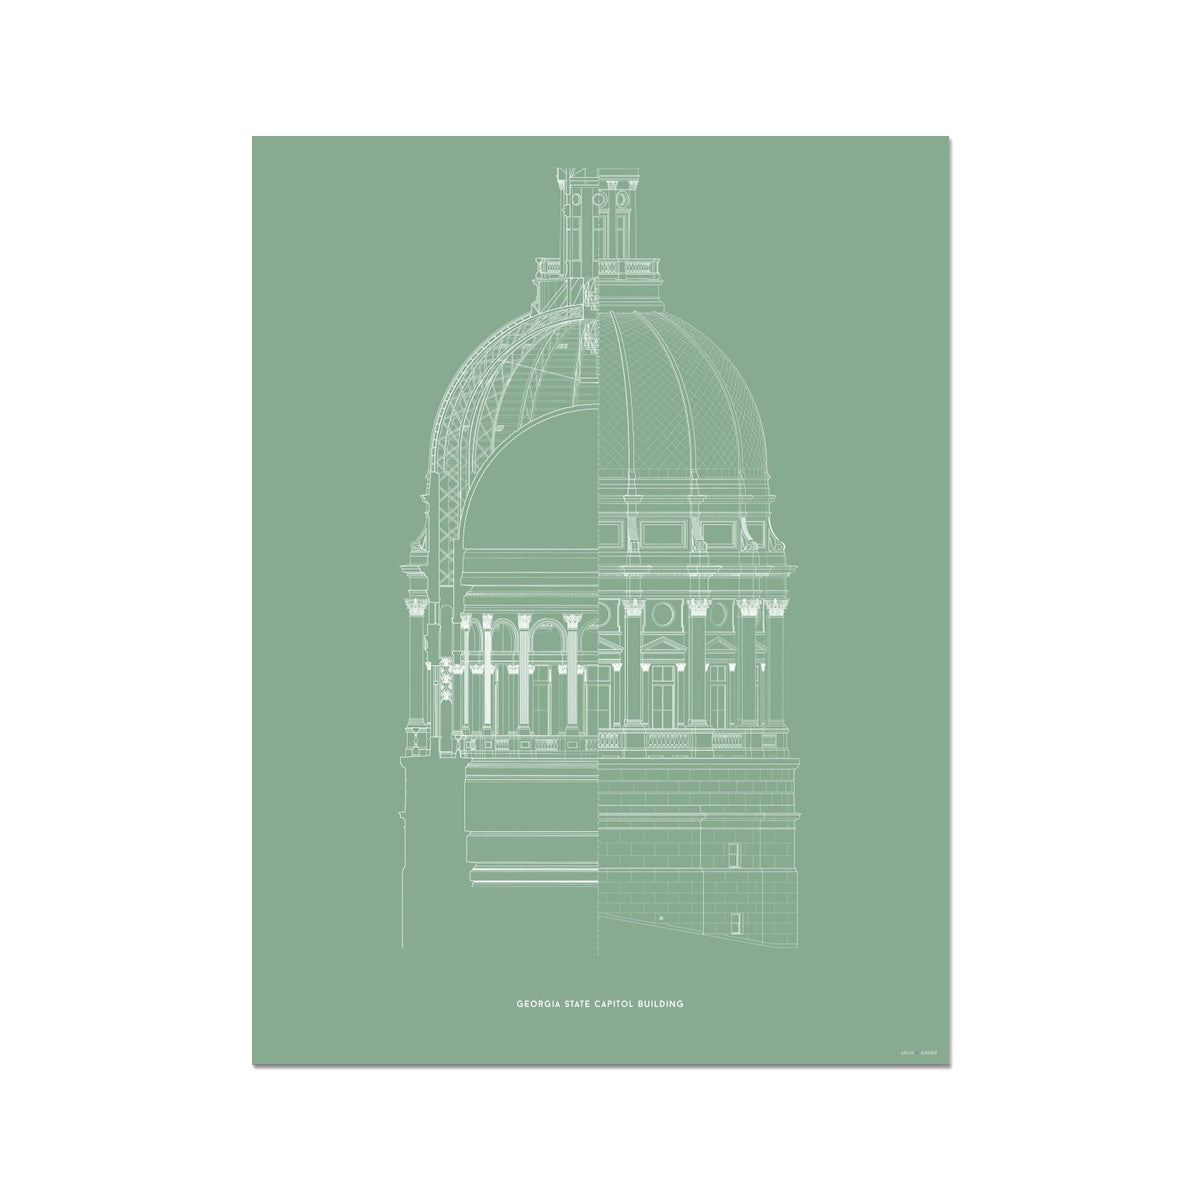 The Georgia State Capitol Building - Dome Cross Section - Green -  Etching Paper Print